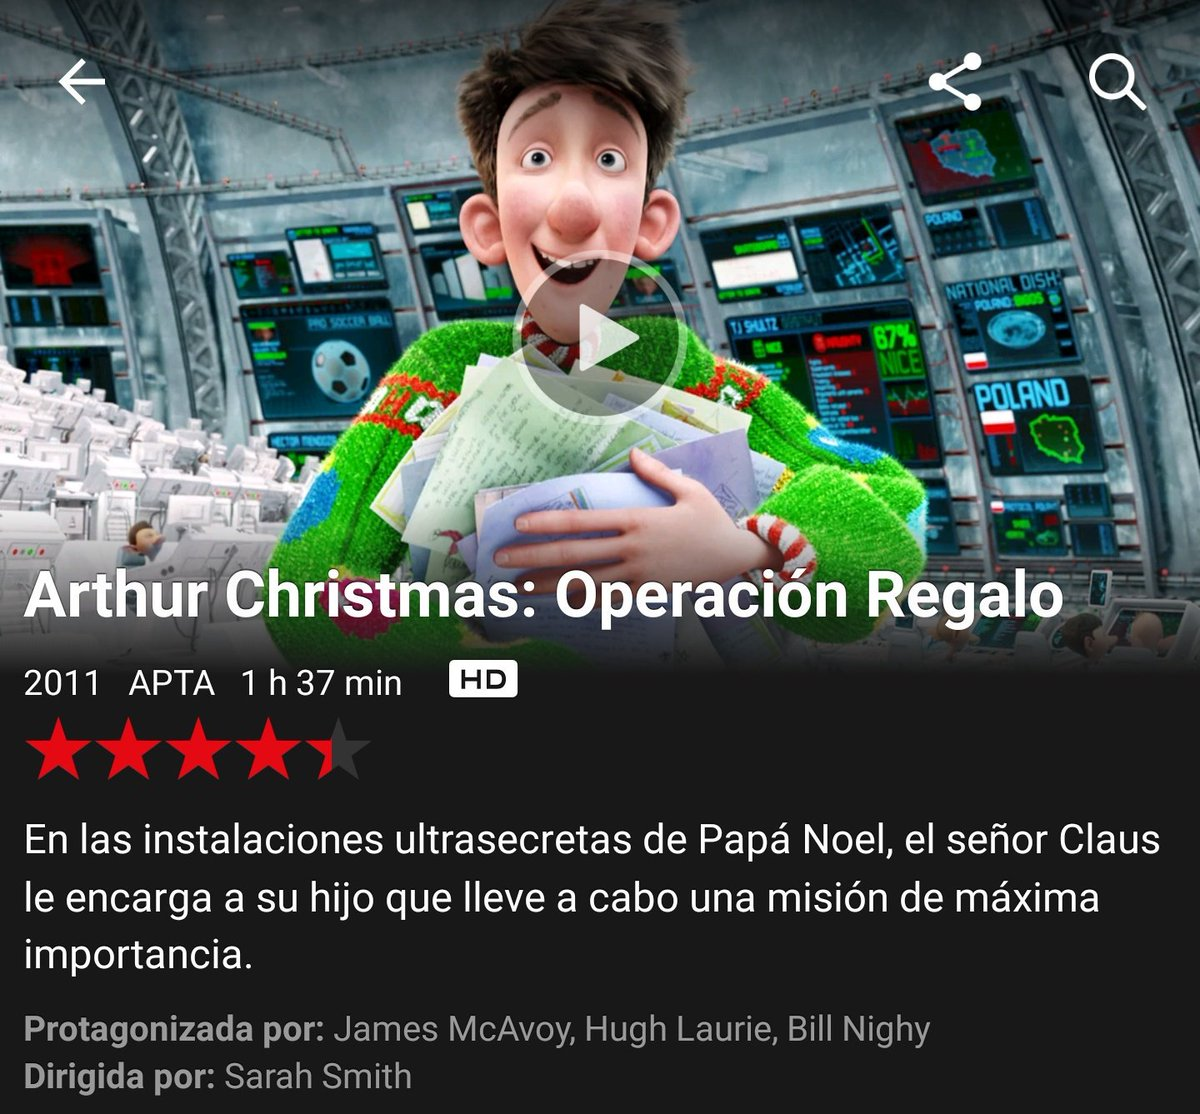 Gallo De Netflix On Twitter 31 3 17 Arthur Christmas Operacion Regalo 2011 Https T Co Joophxjuhr